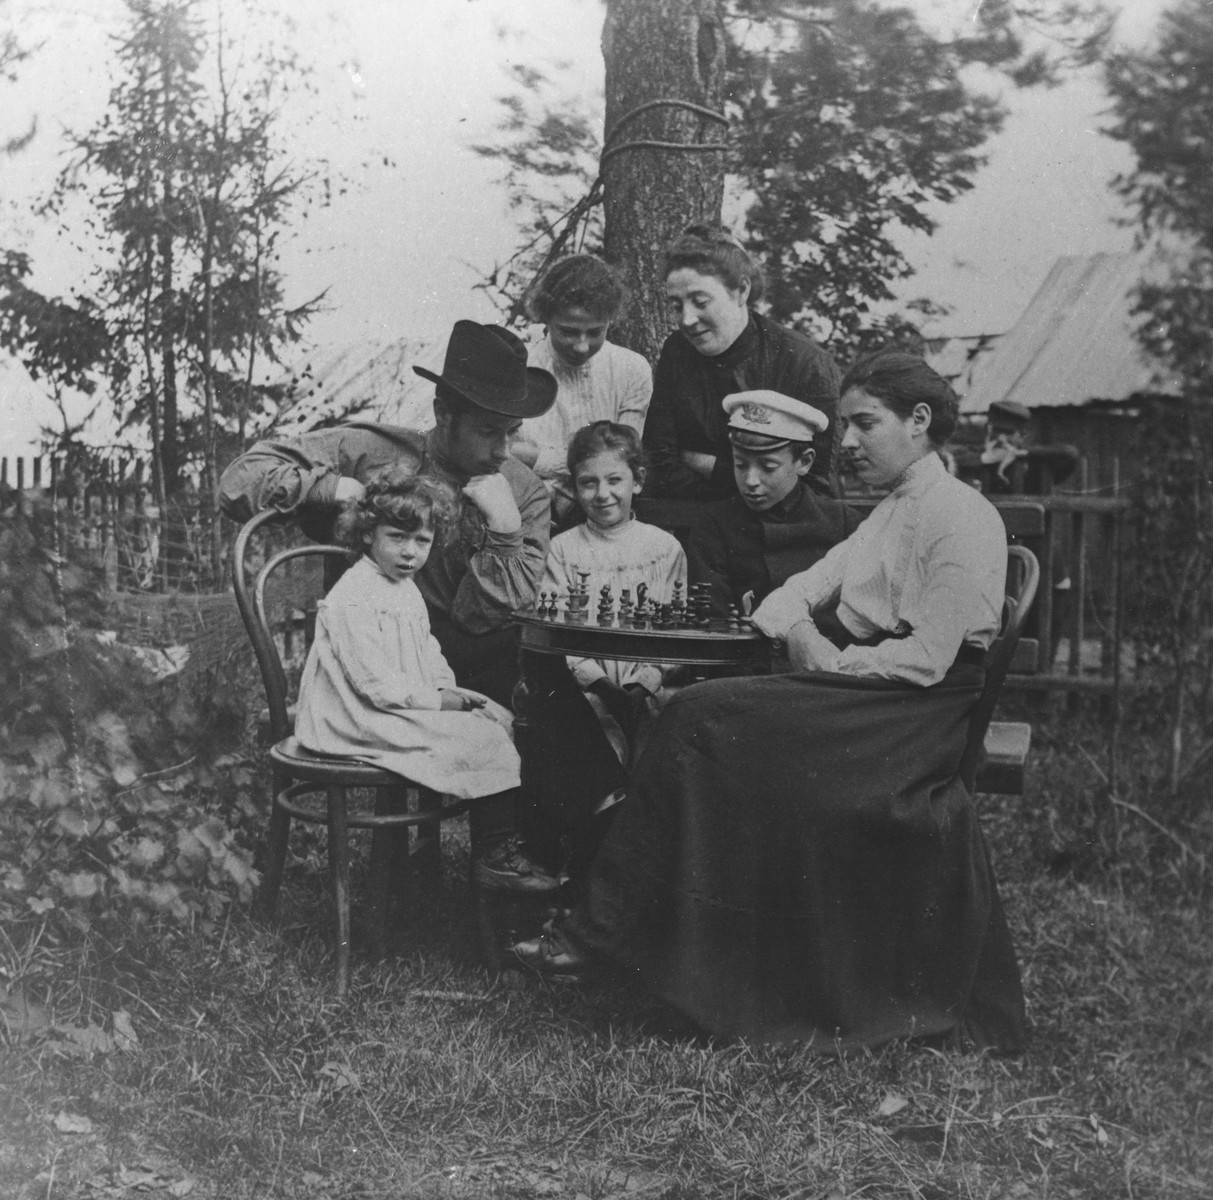 Members of the Michaelevsky family play chess outside in the yard of their home in Petrograd, Russia.